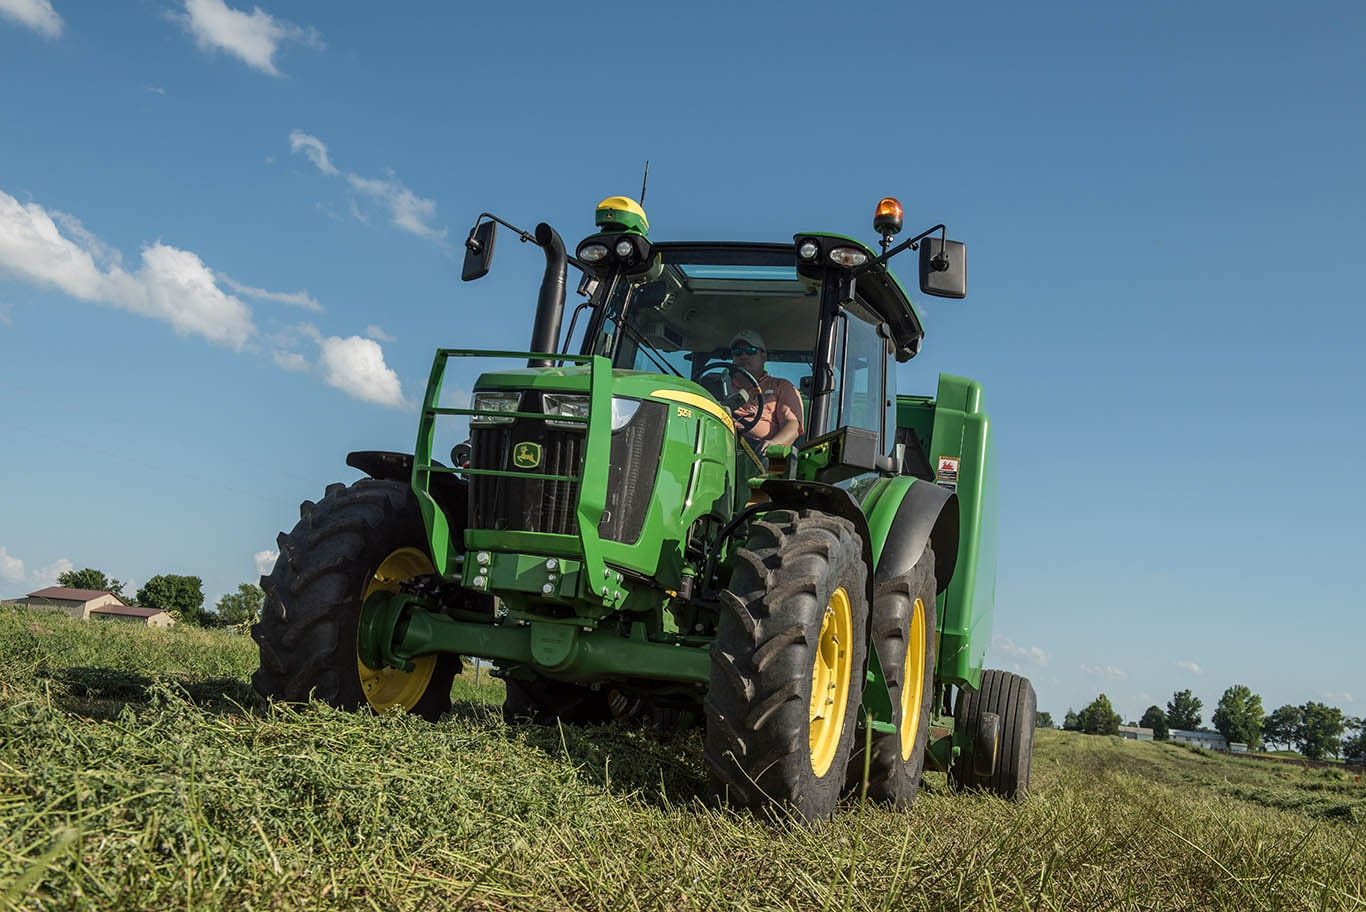 Deere announces MY 19 Updates for 5R Utility Tractors